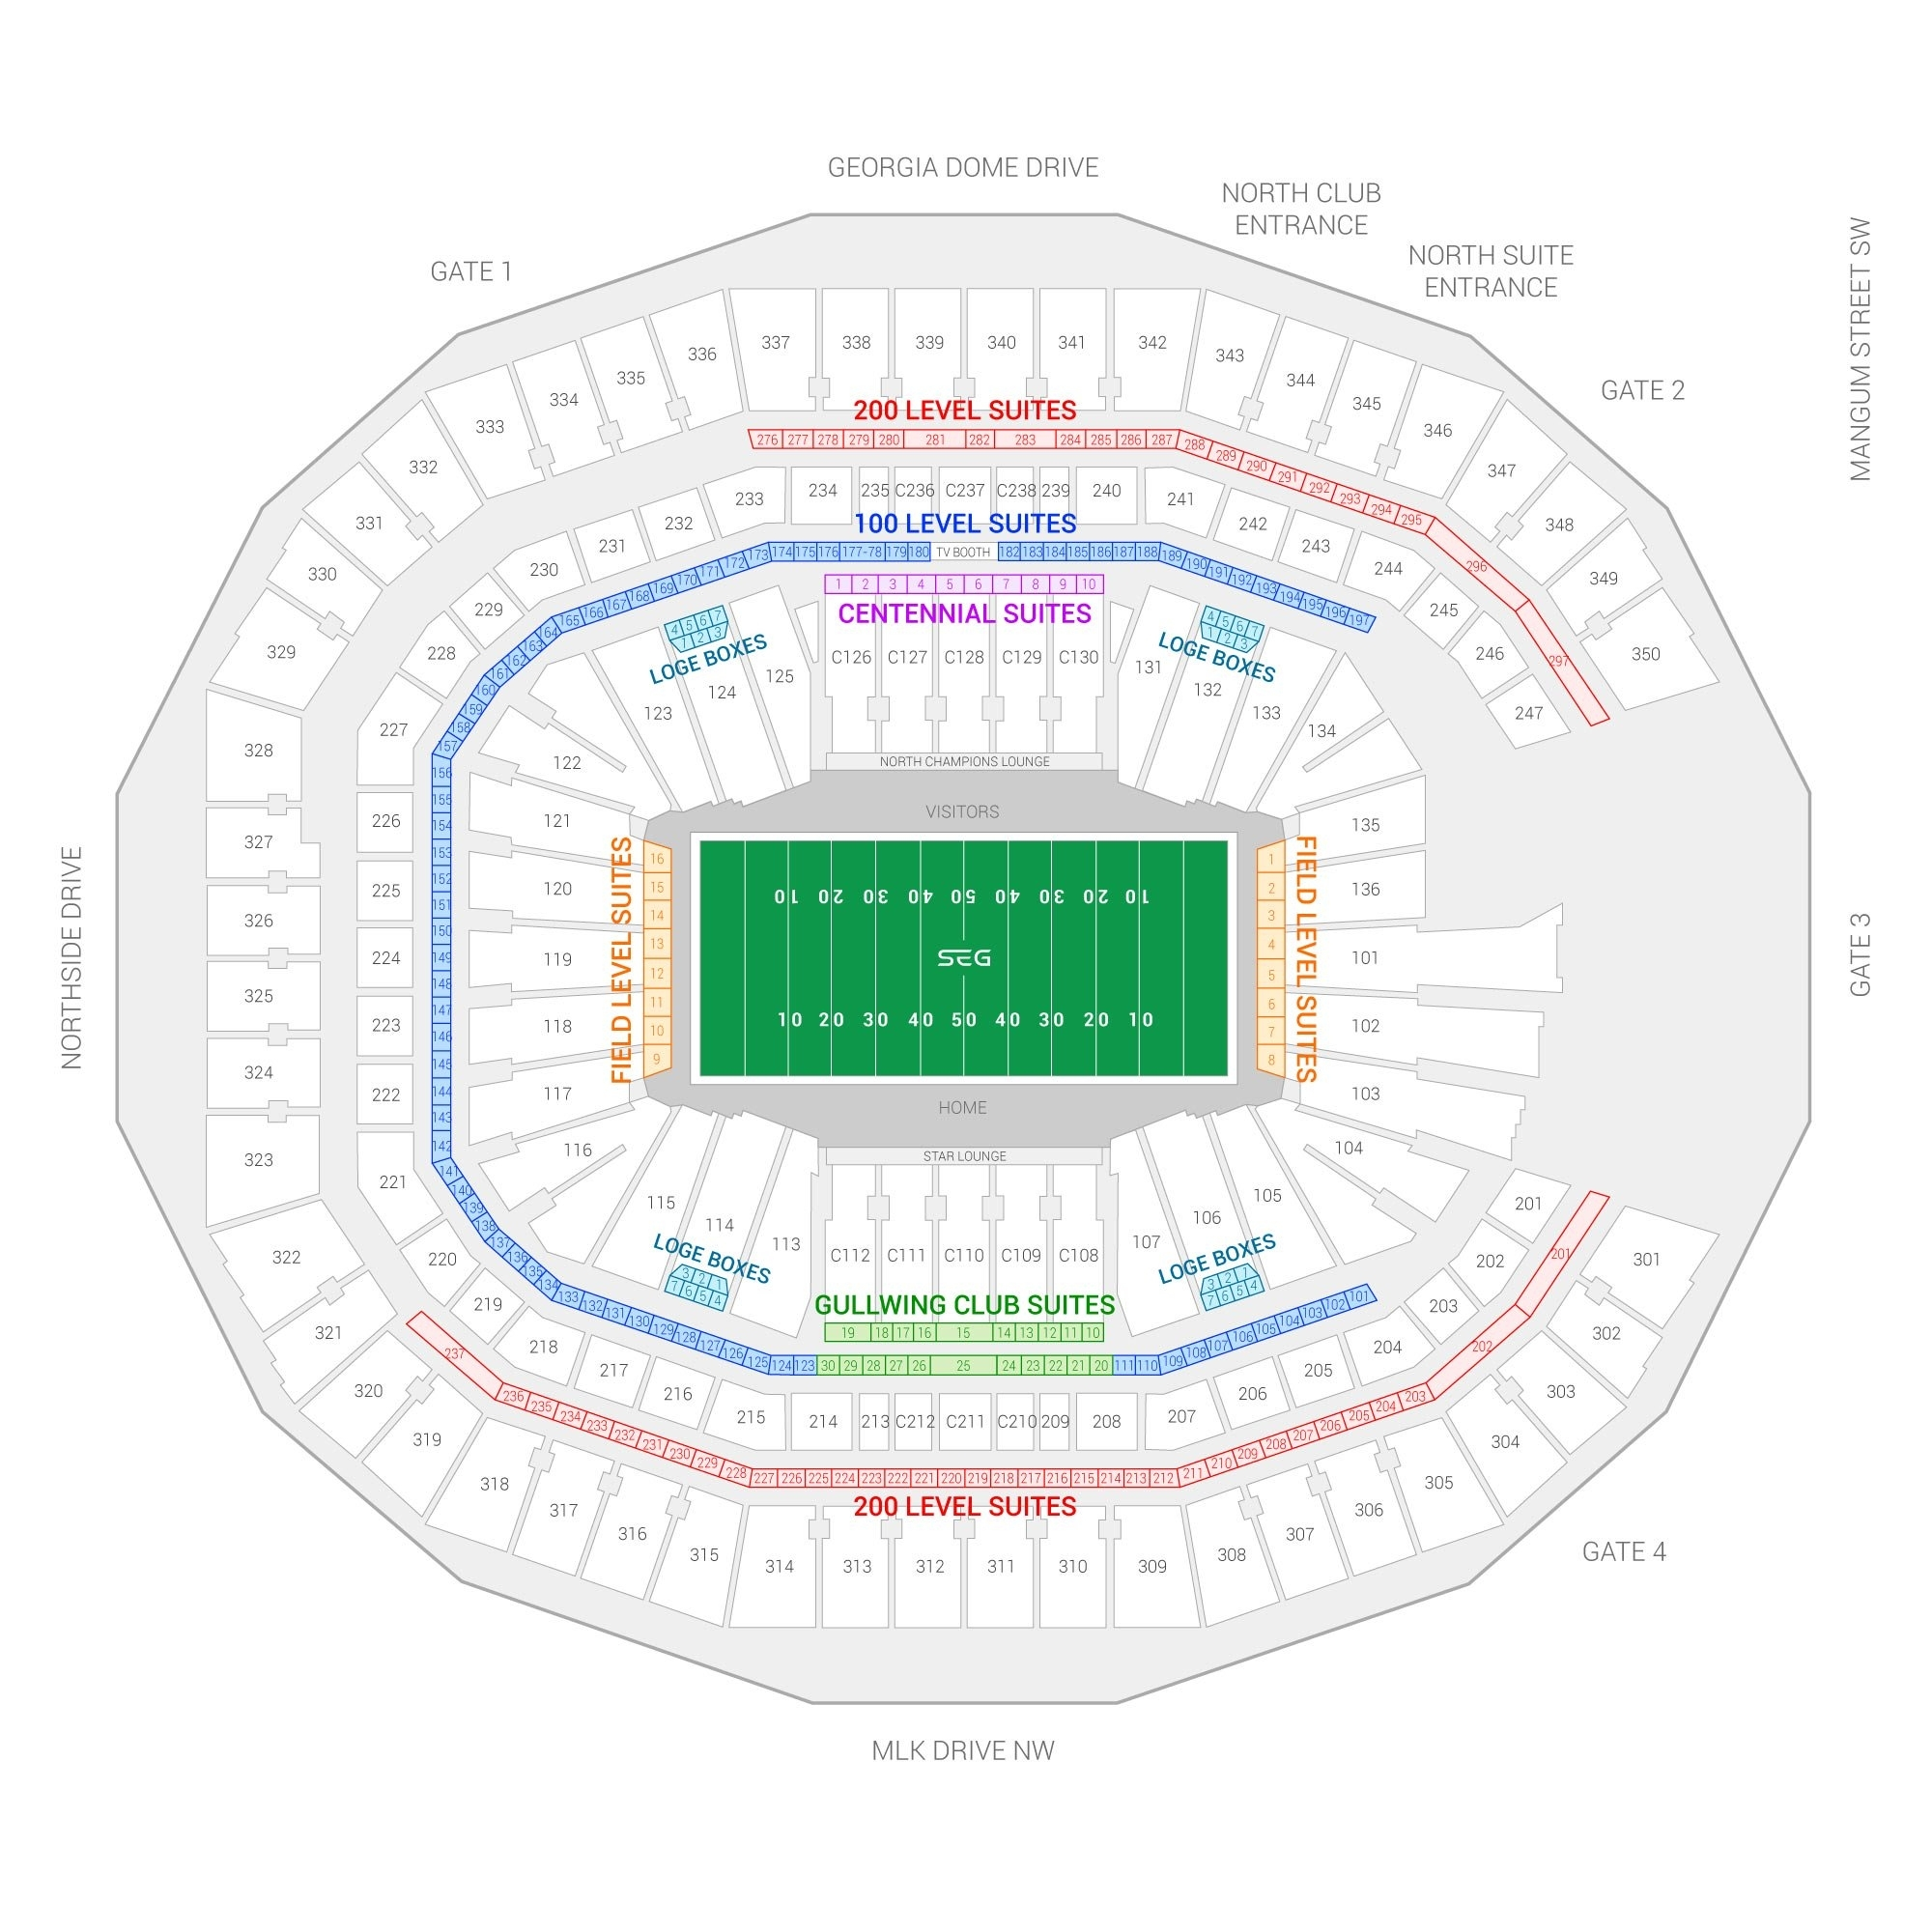 Super Bowl Liii Suite Rentals | Mercedes-Benz Stadium regarding Super Bowl Atlanta Seating Chart